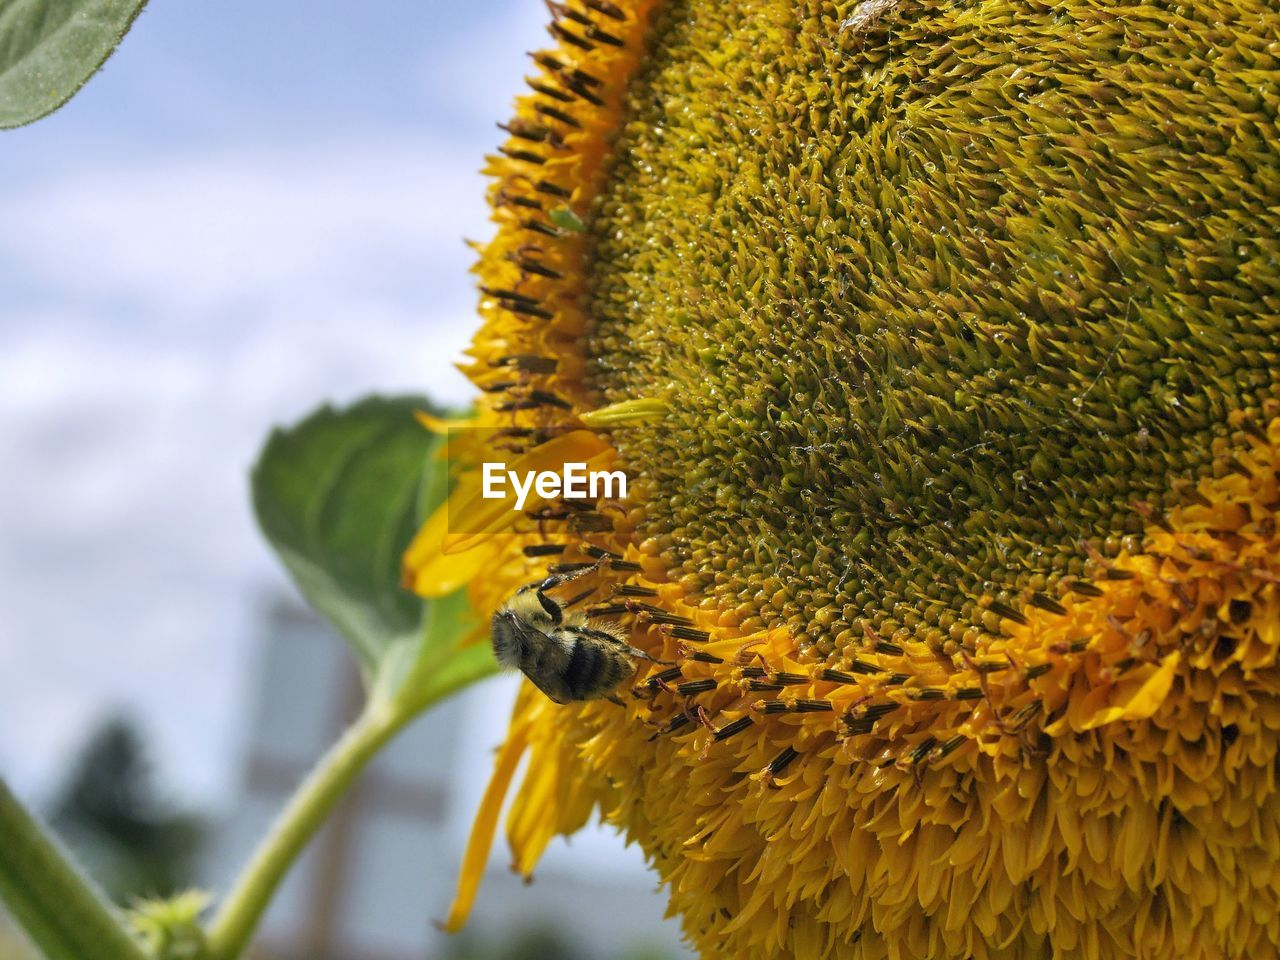 flower, yellow, flowering plant, one animal, flower head, petal, animal themes, invertebrate, close-up, plant, animal wildlife, animals in the wild, beauty in nature, growth, animal, fragility, insect, vulnerability, bee, sunflower, pollen, pollination, no people, outdoors